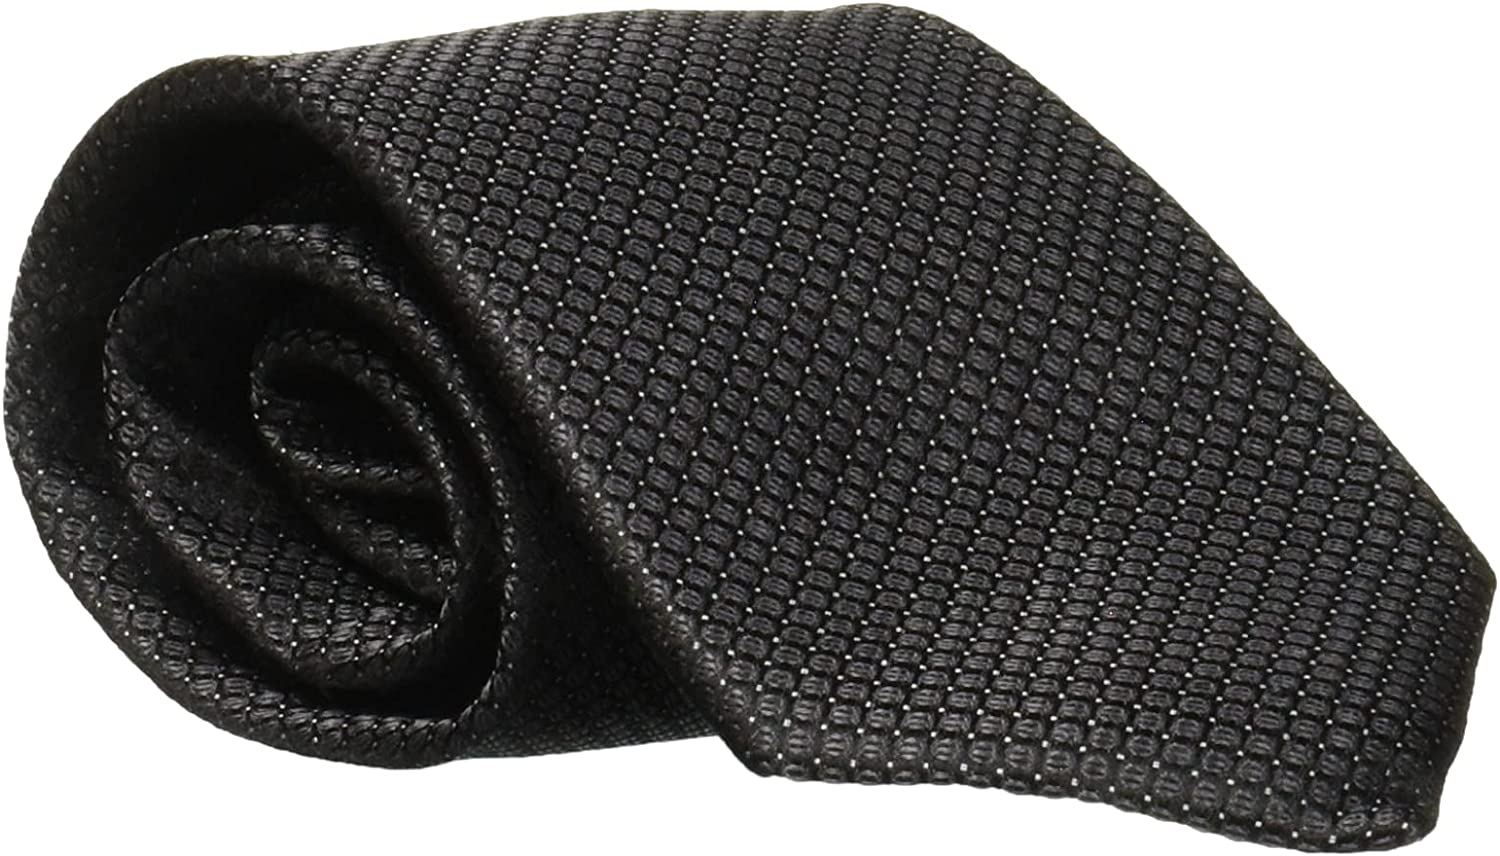 Calvin Klein Men's Tie Black National All items in the store products